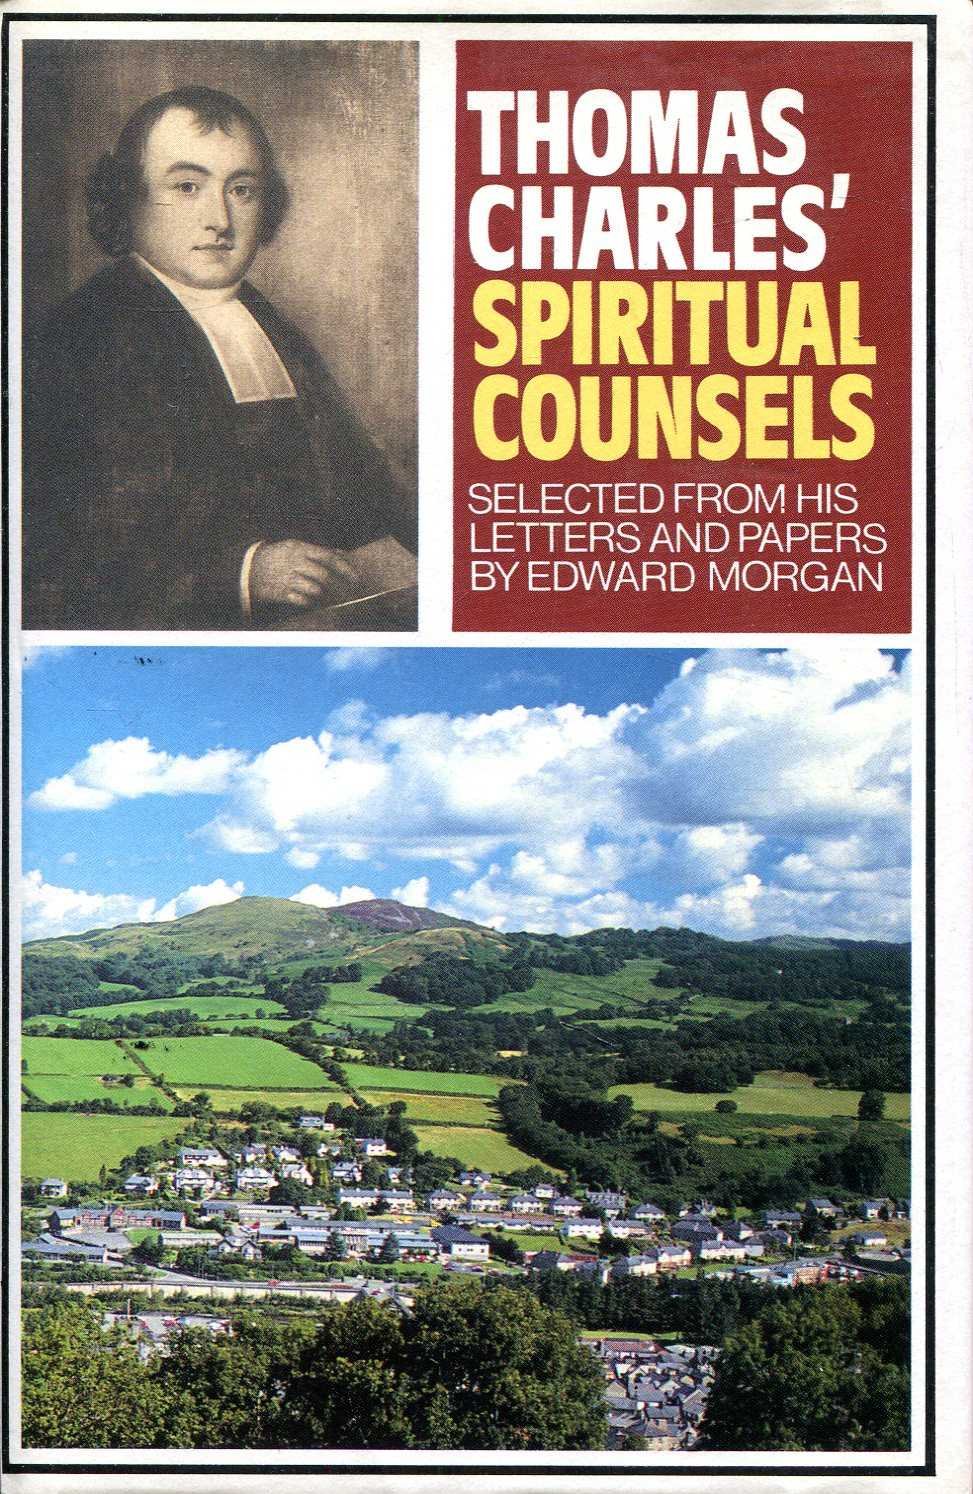 Image for Thomas Charles' Spiritual Counsels, selected from his letters and papers